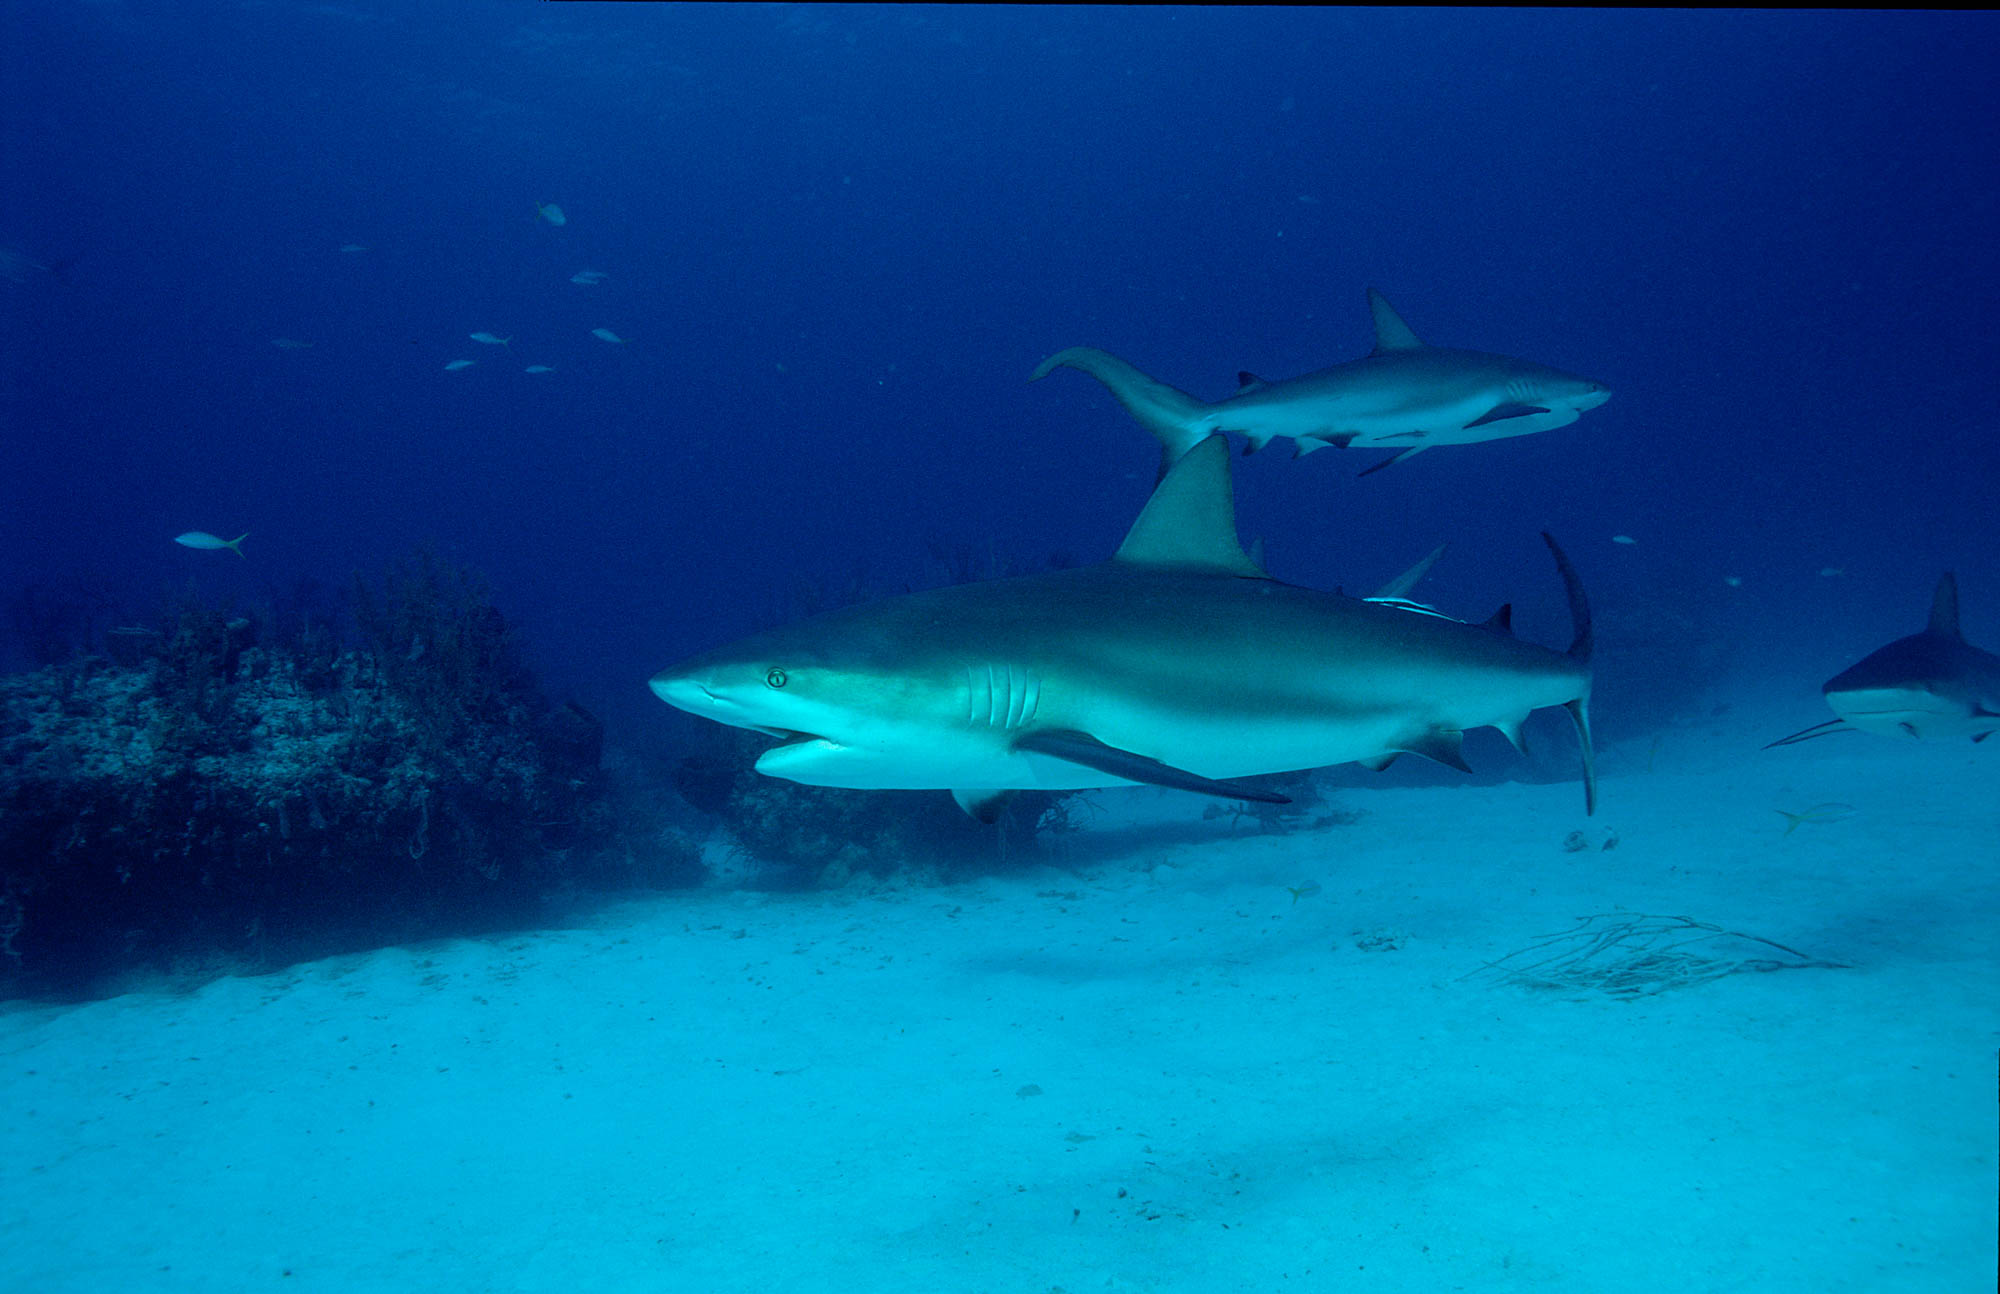 Swimming Caribbean reef sharks (Getty Images/Reinhard Dirscherl)